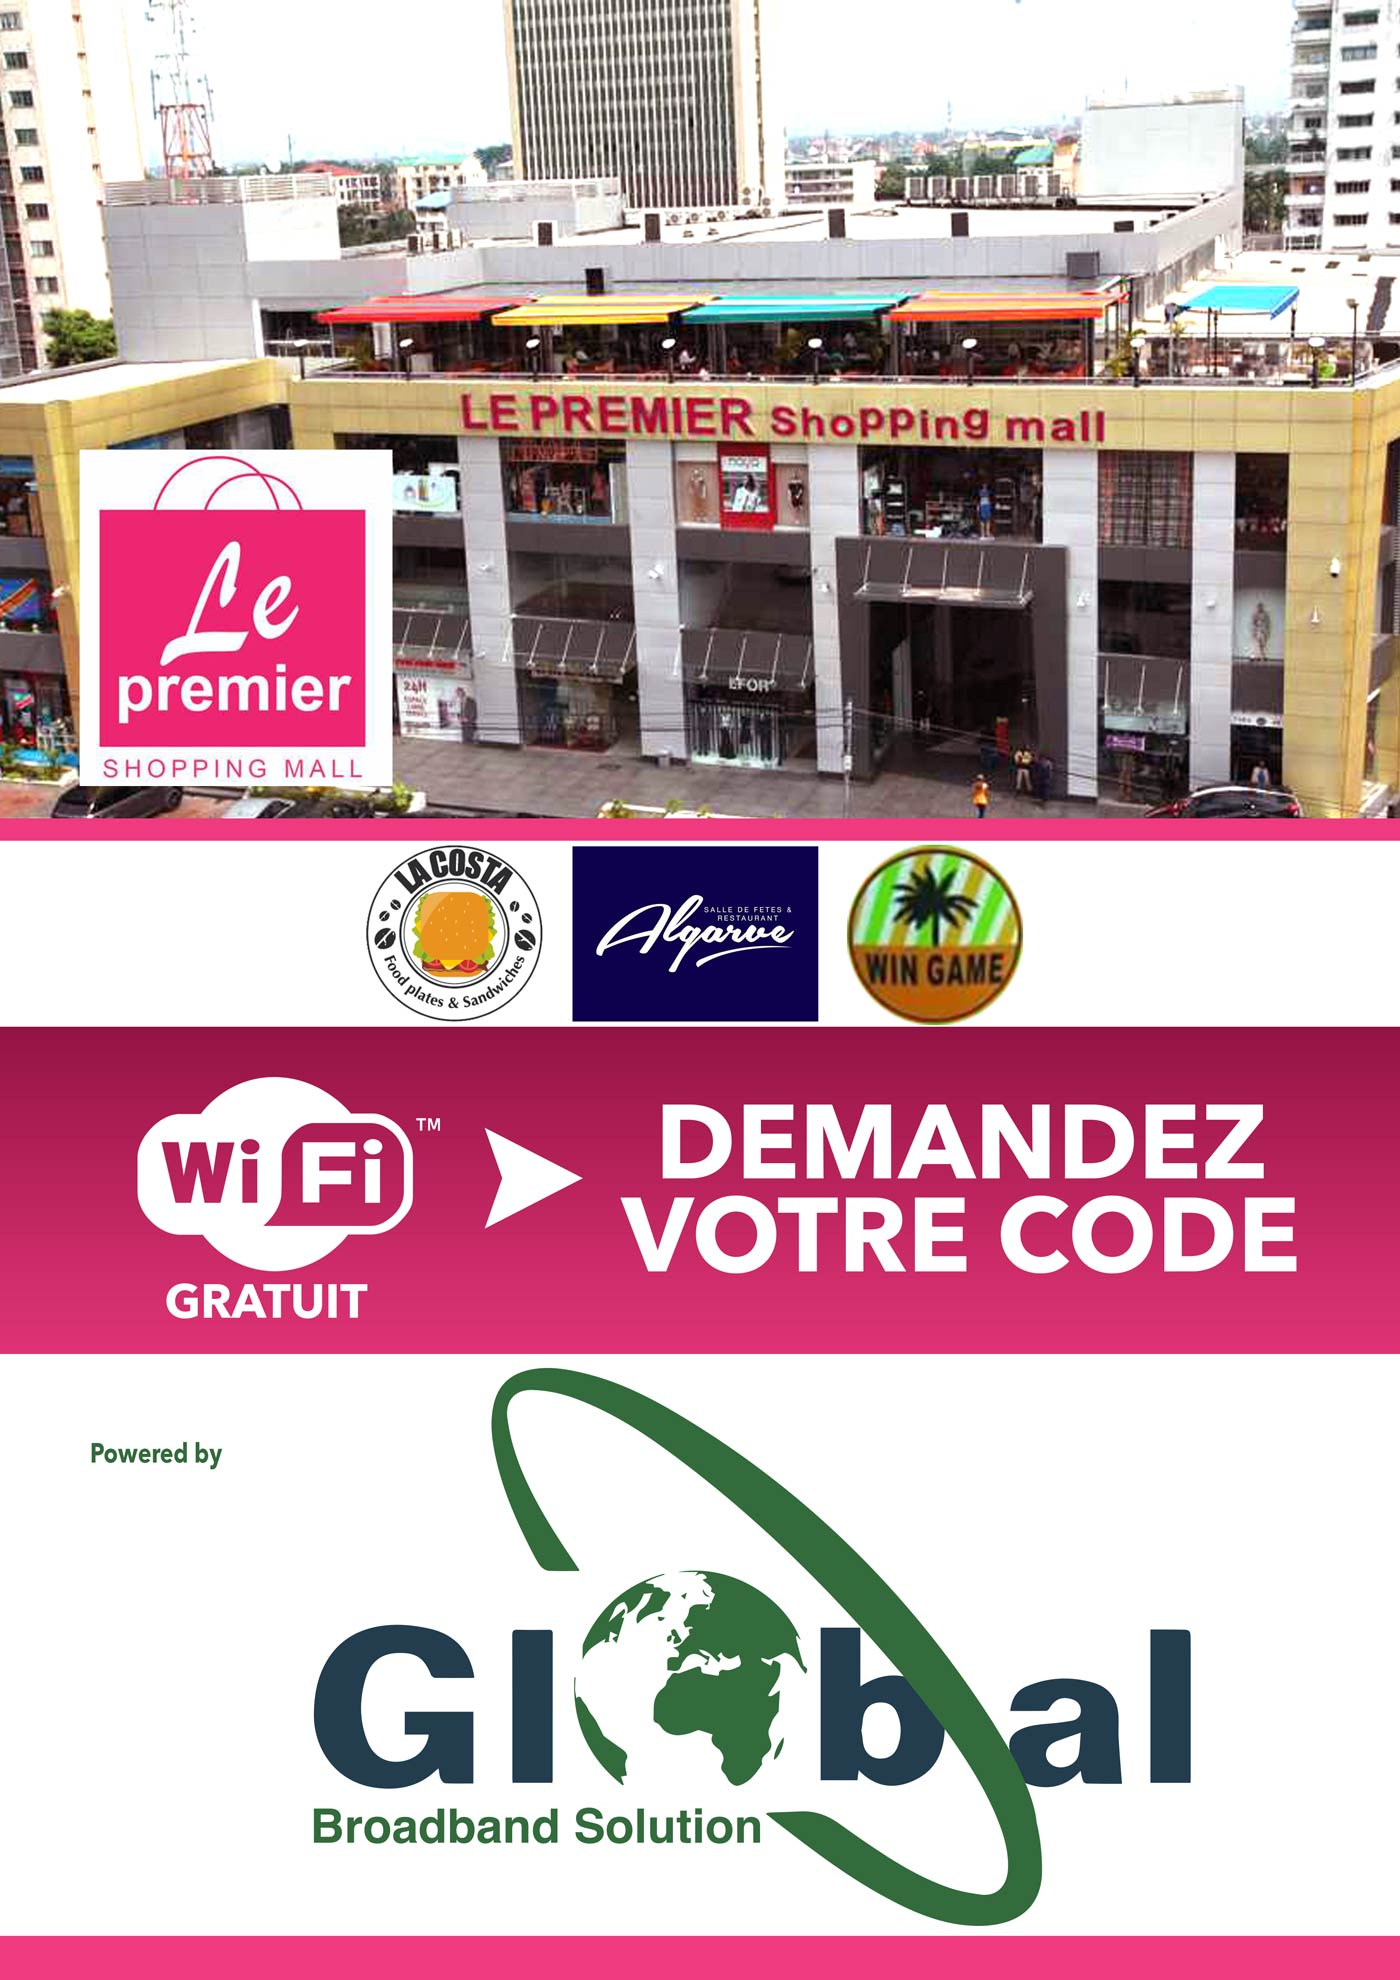 Wifi Hotspot chez Le Premier Shopping mall